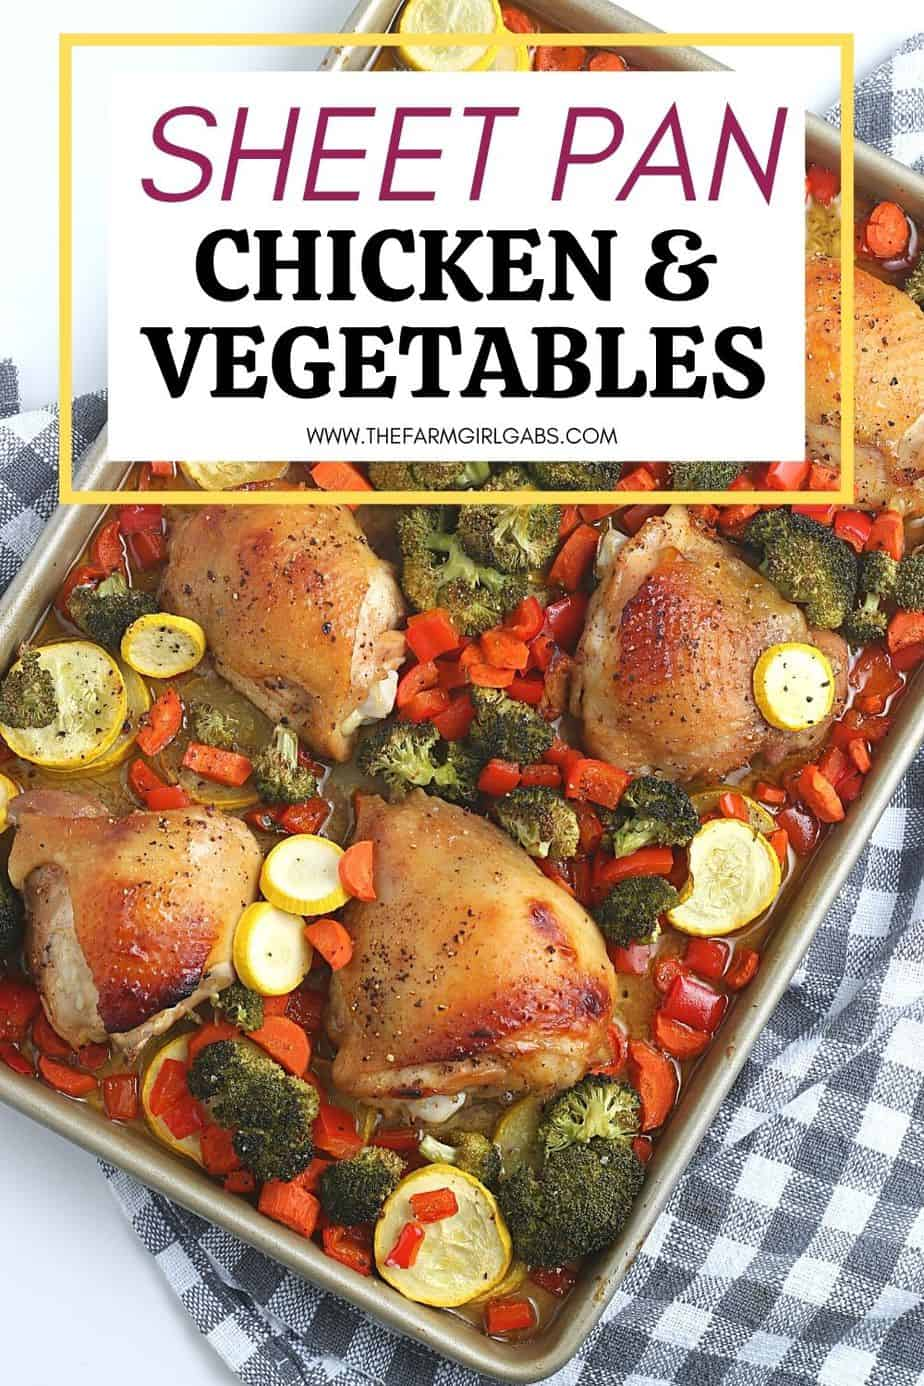 Want to make a delicious mess-free meal that is good for you? Try this health Sheet Pan Chicken and Vegetables Dinner consisting of chicken thighs, broccoli, carrots, and more! You will love this easy weeknight meal idea.